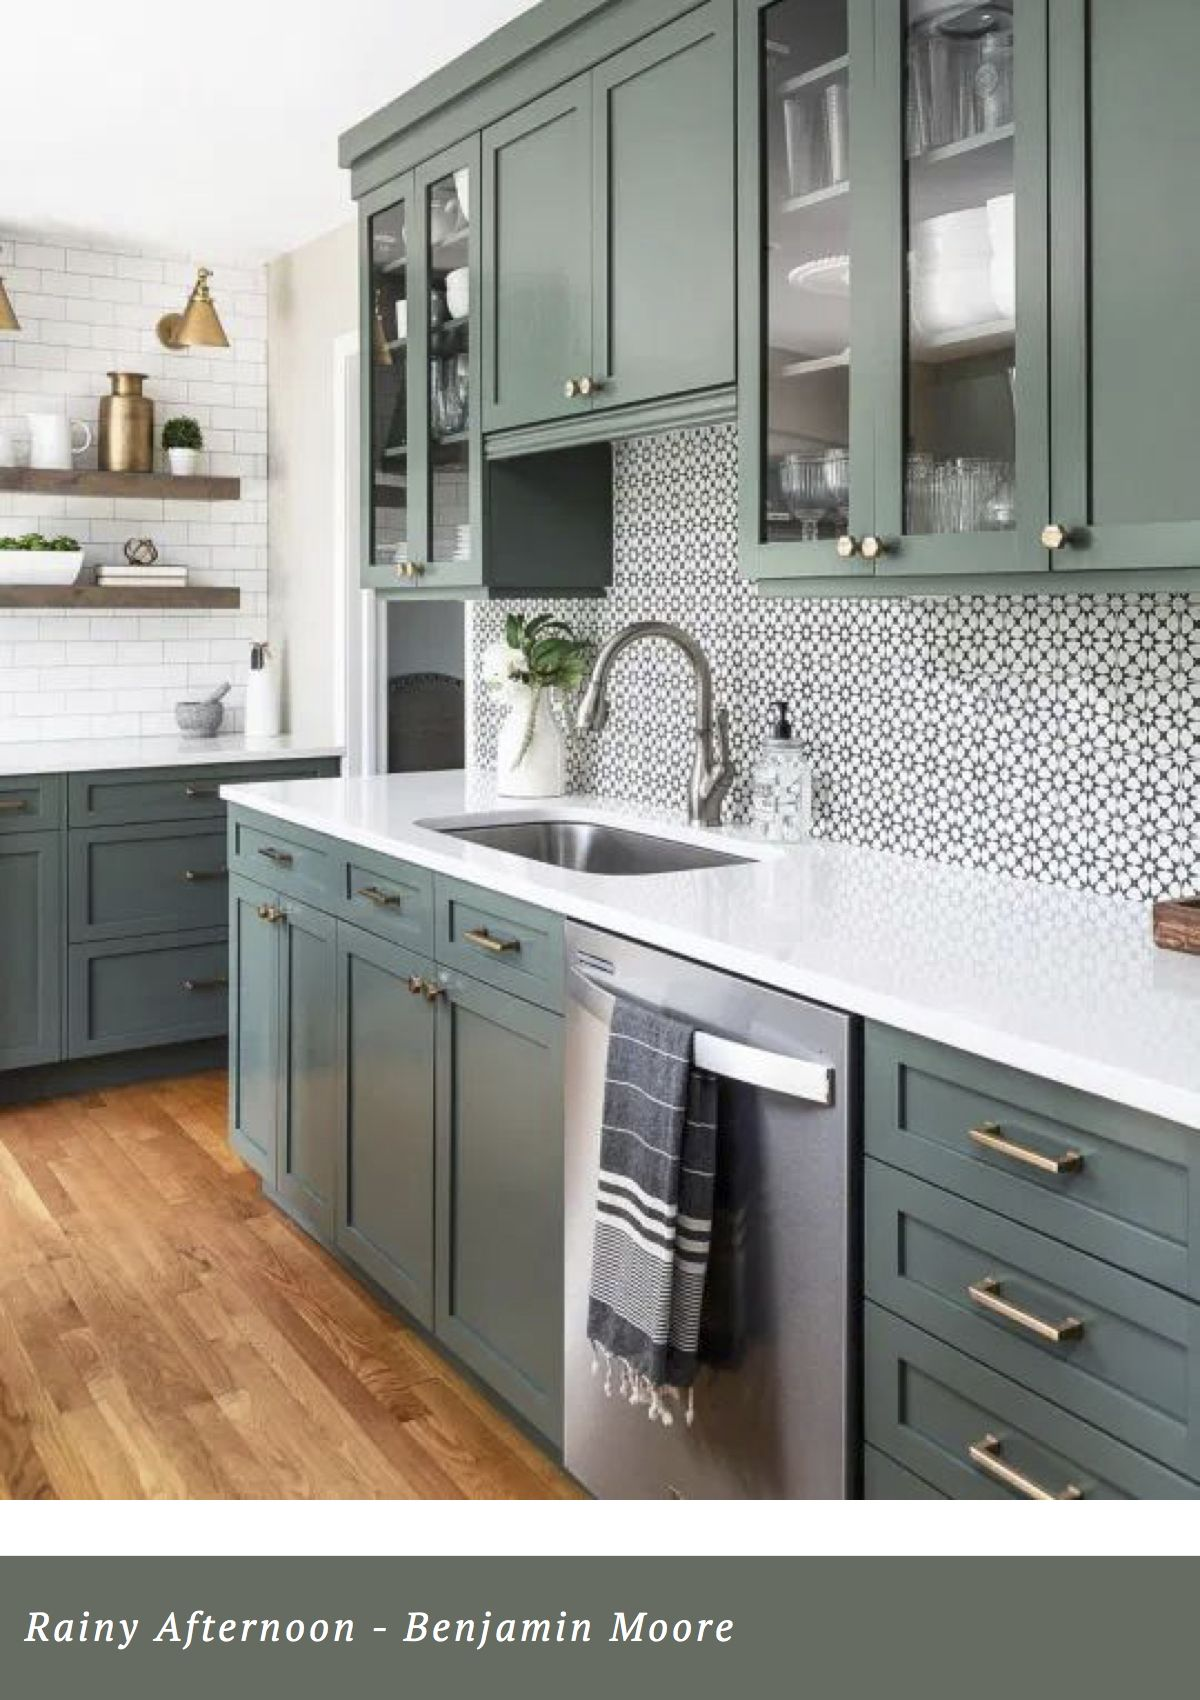 Kitchen Series Going Green   In Honor Of Design in 9   Green ...